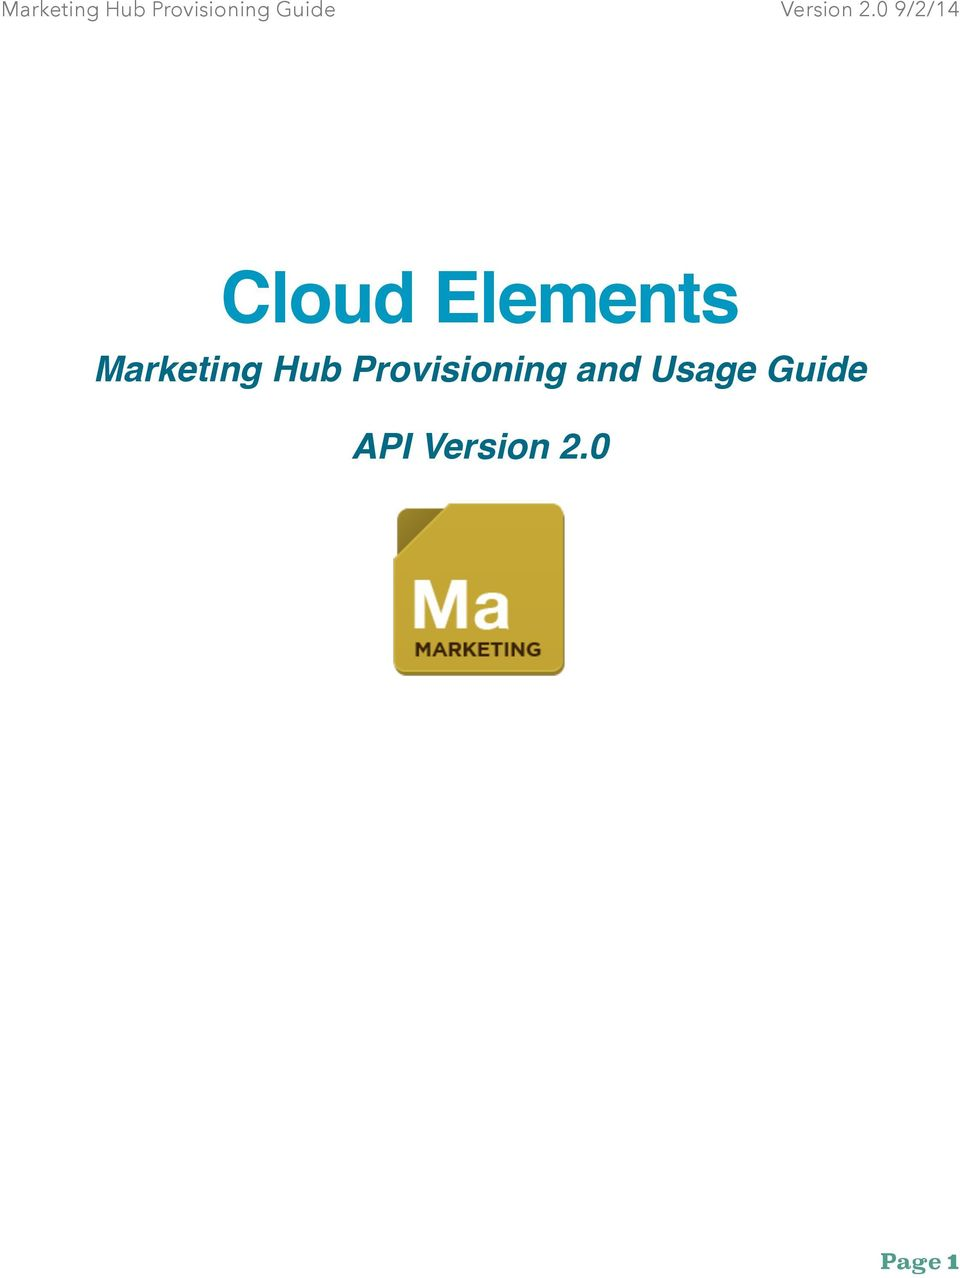 Cloud Elements! Marketing Hub Provisioning and Usage Guide